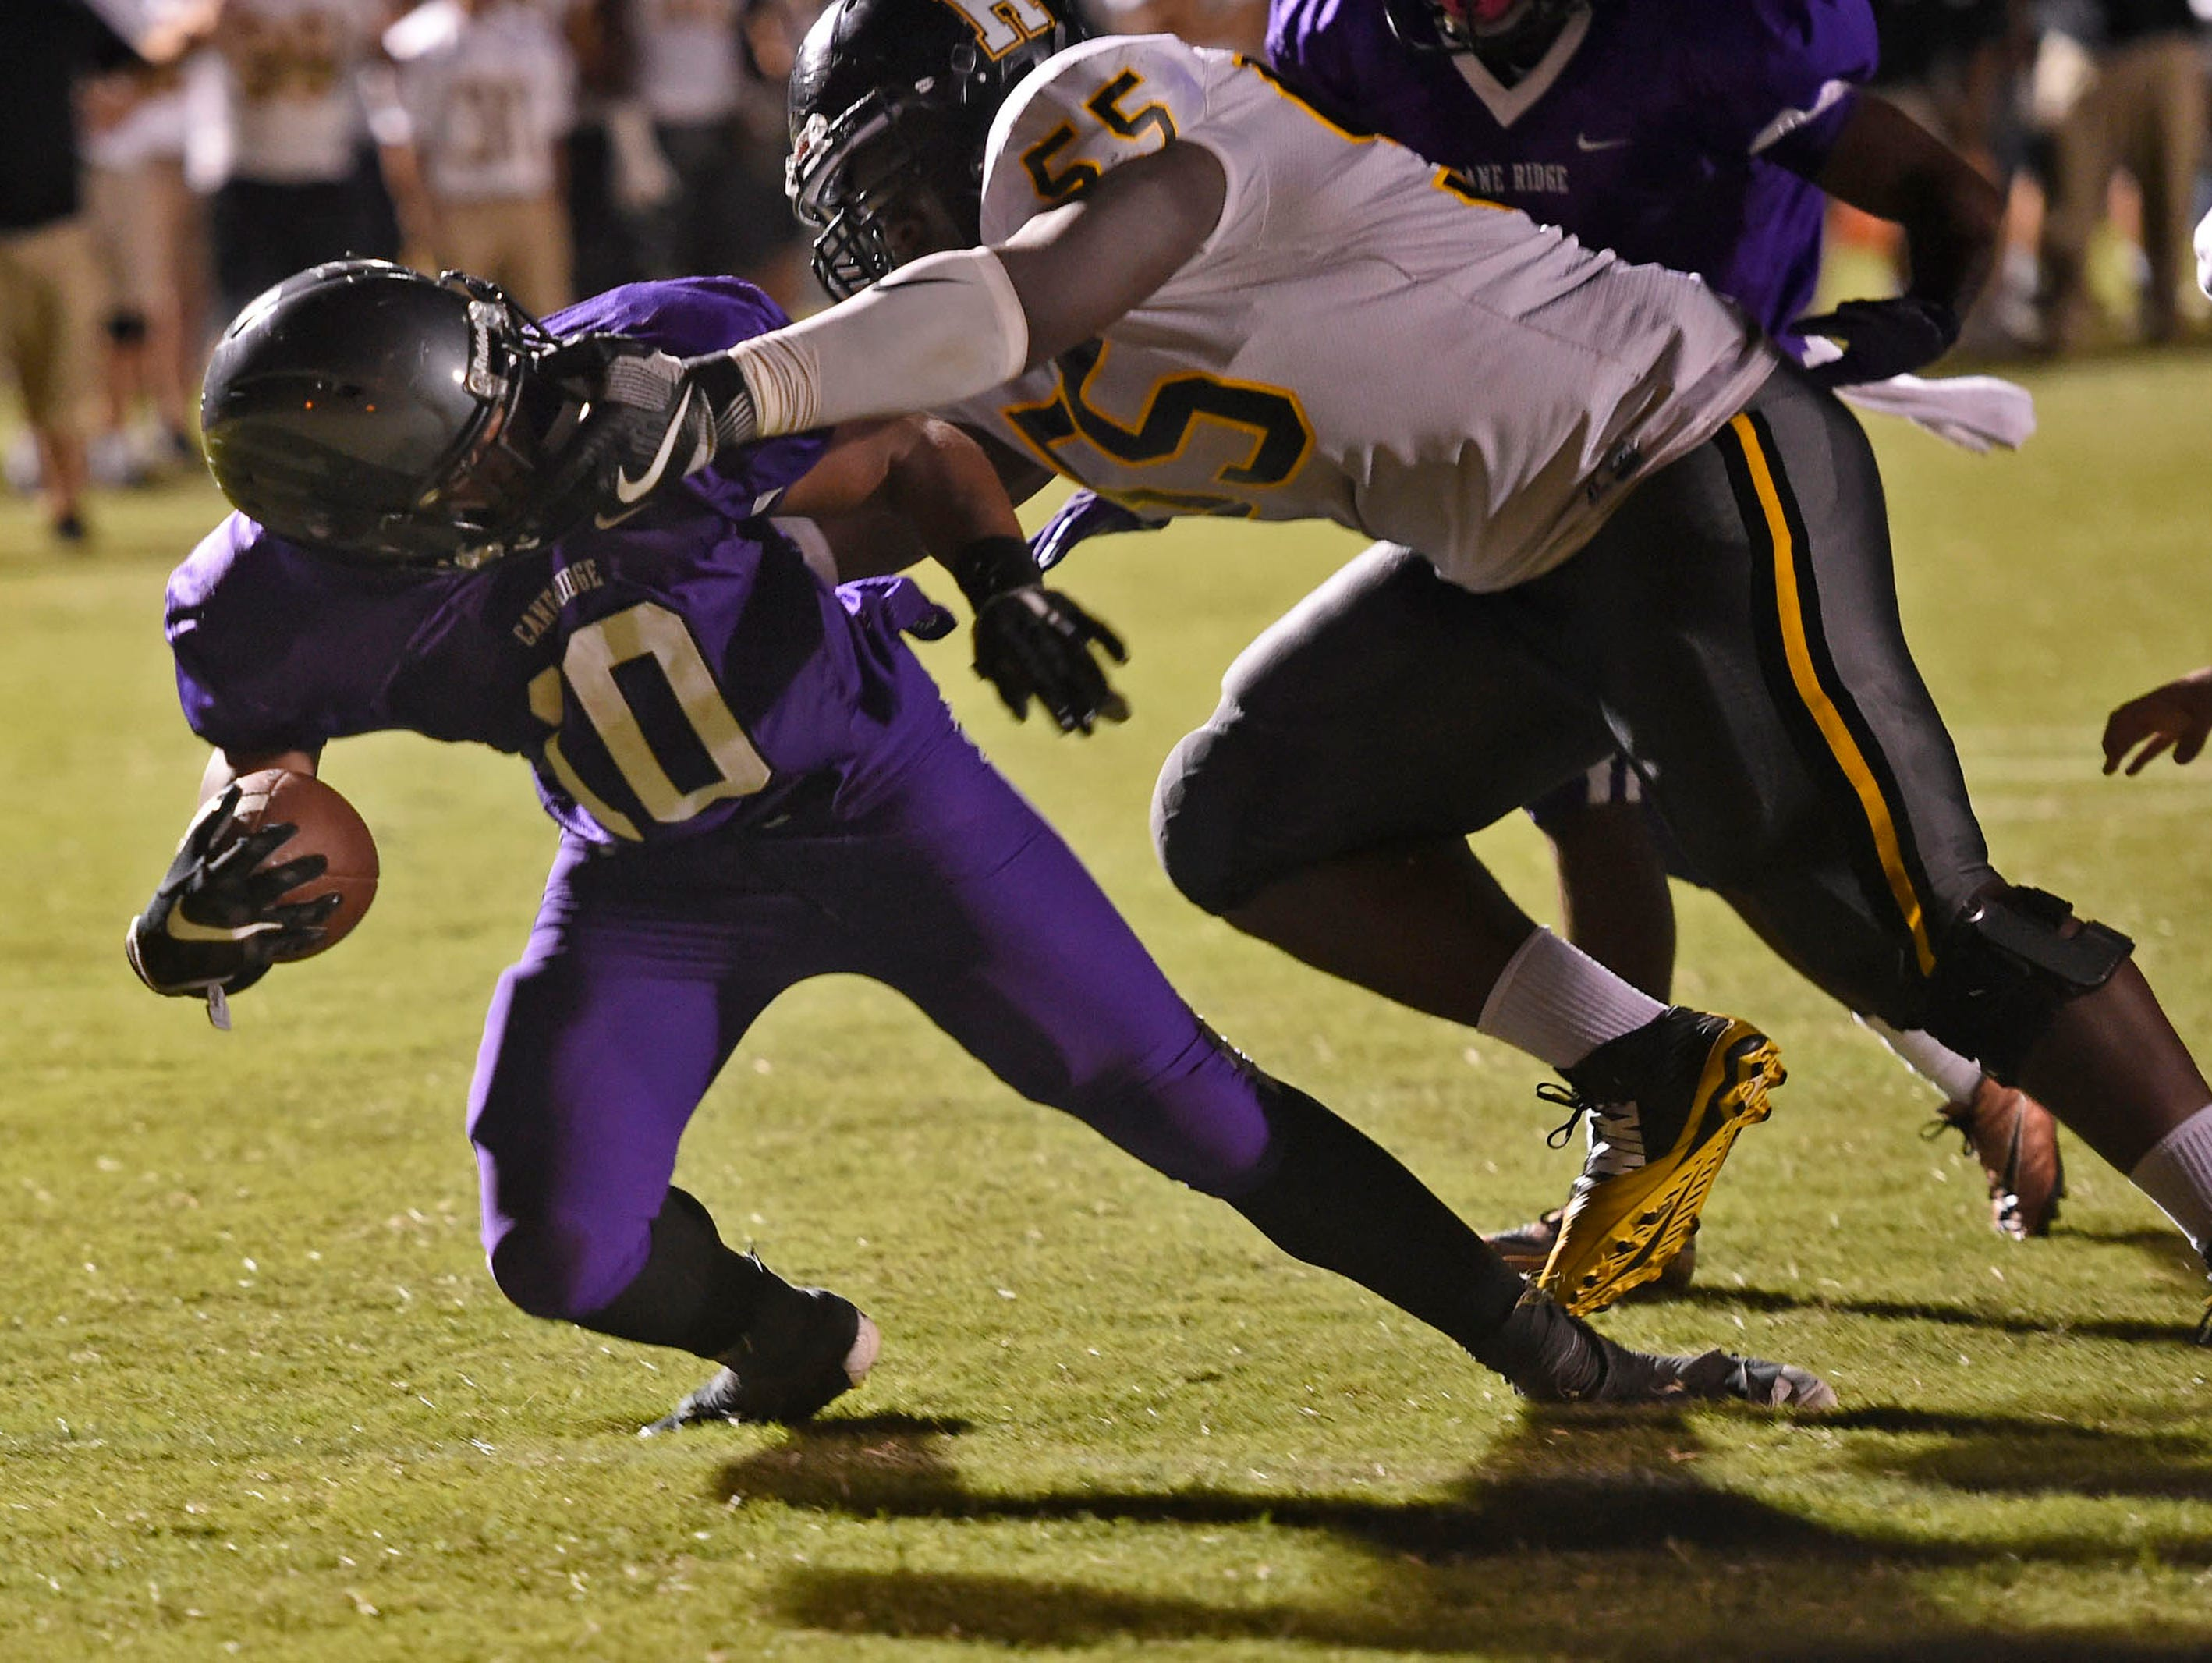 Hendersonville's Derek Grandberry, 55, tries to stop Cane Ridge RB Jordan Bell, 10. Even a face mask couldn't keep Bell from scoring the touchdown that tied the game on Friday, September 2, 2016. Cane Ridge won 47-46.